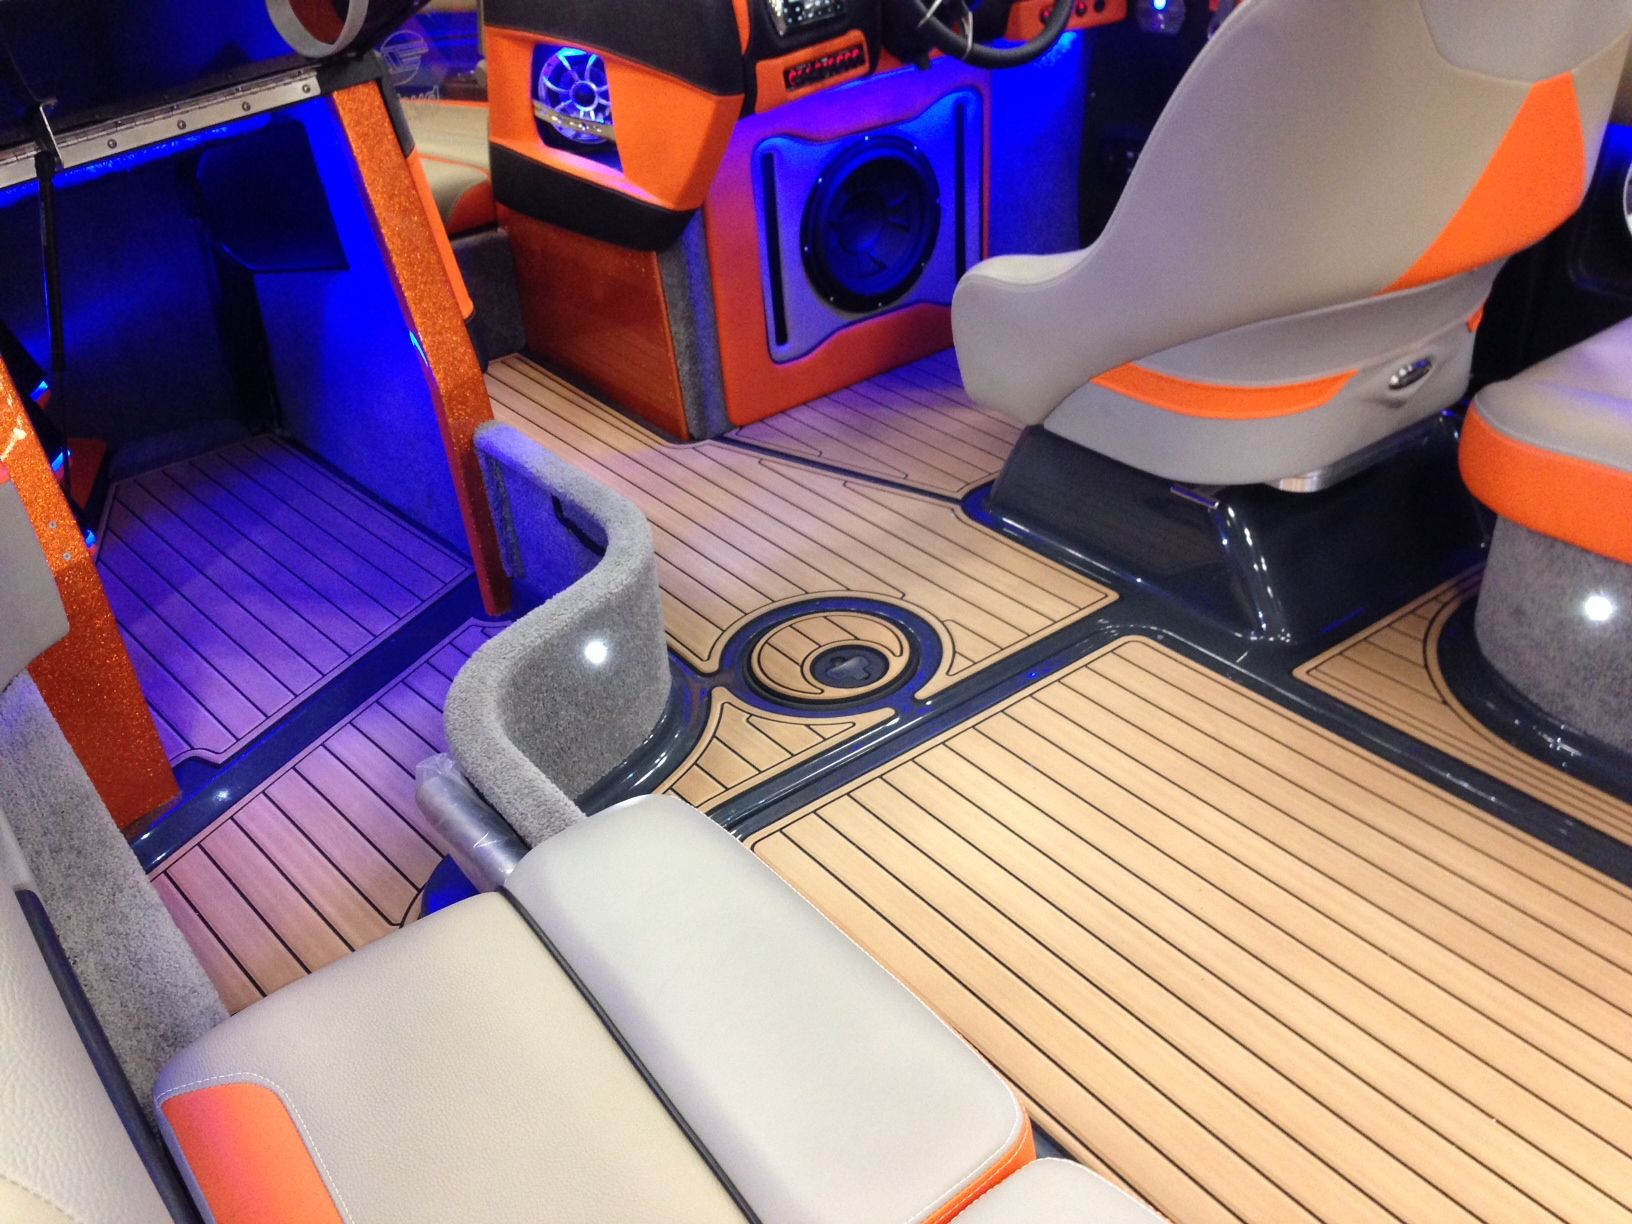 Custom Seadek Installed On 2013 Malibu 23 Lsv By Hydrotunes Boat Sold By Texas Malibu In New Braunfels Water Crafts Summertime Fun Things To Sell